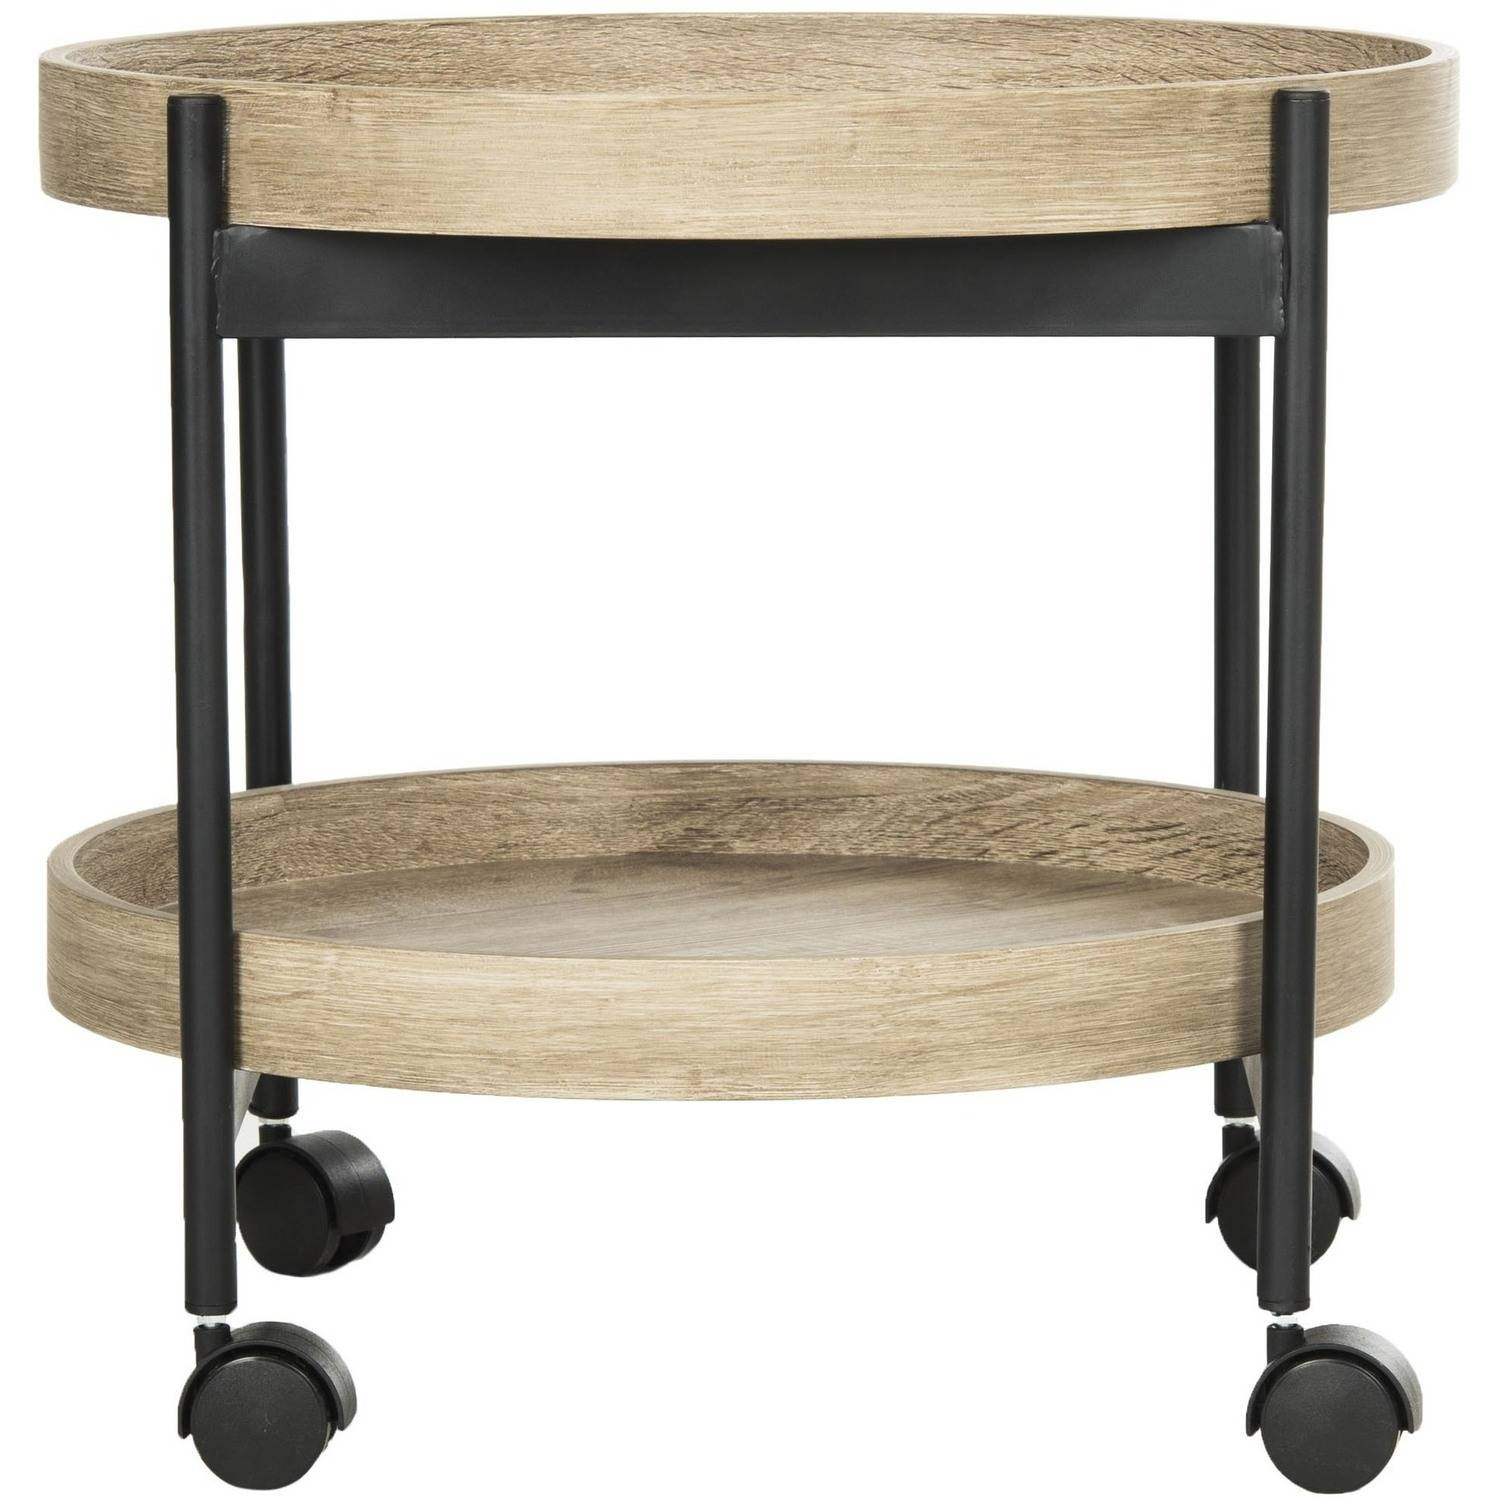 "Safavieh Javan 20"" Round Retro Mid Century 2-Tier Tray Side Table, Light Grey/Black"